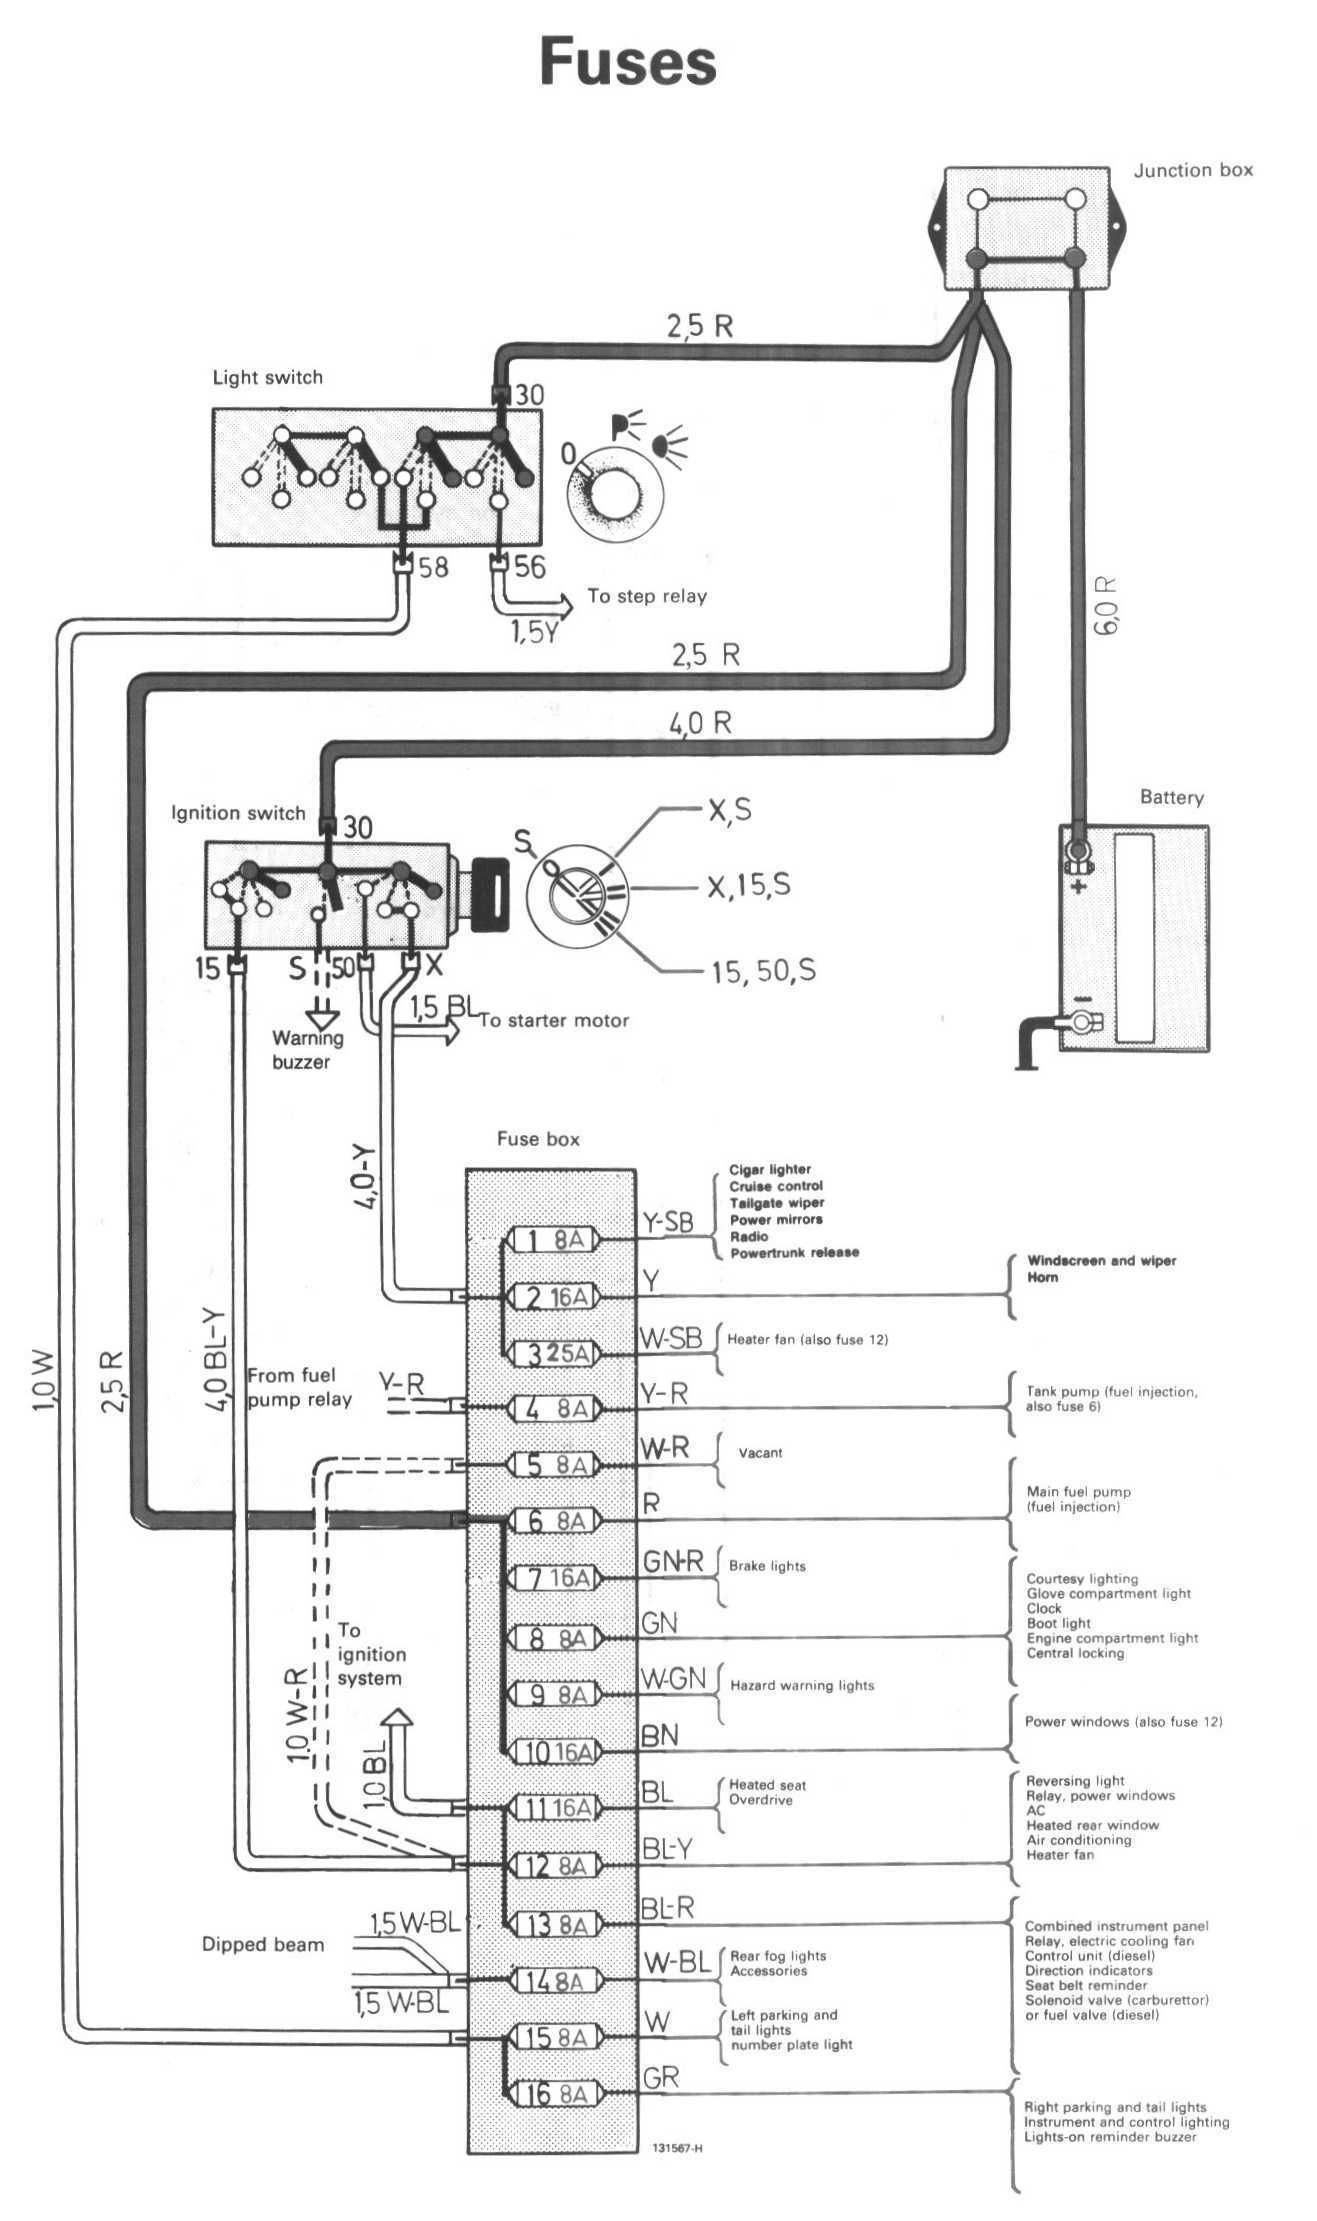 89 volvo 240 fuse box wiring diagram operations 2001 volvo 240 fuse box [ 1317 x 2221 Pixel ]